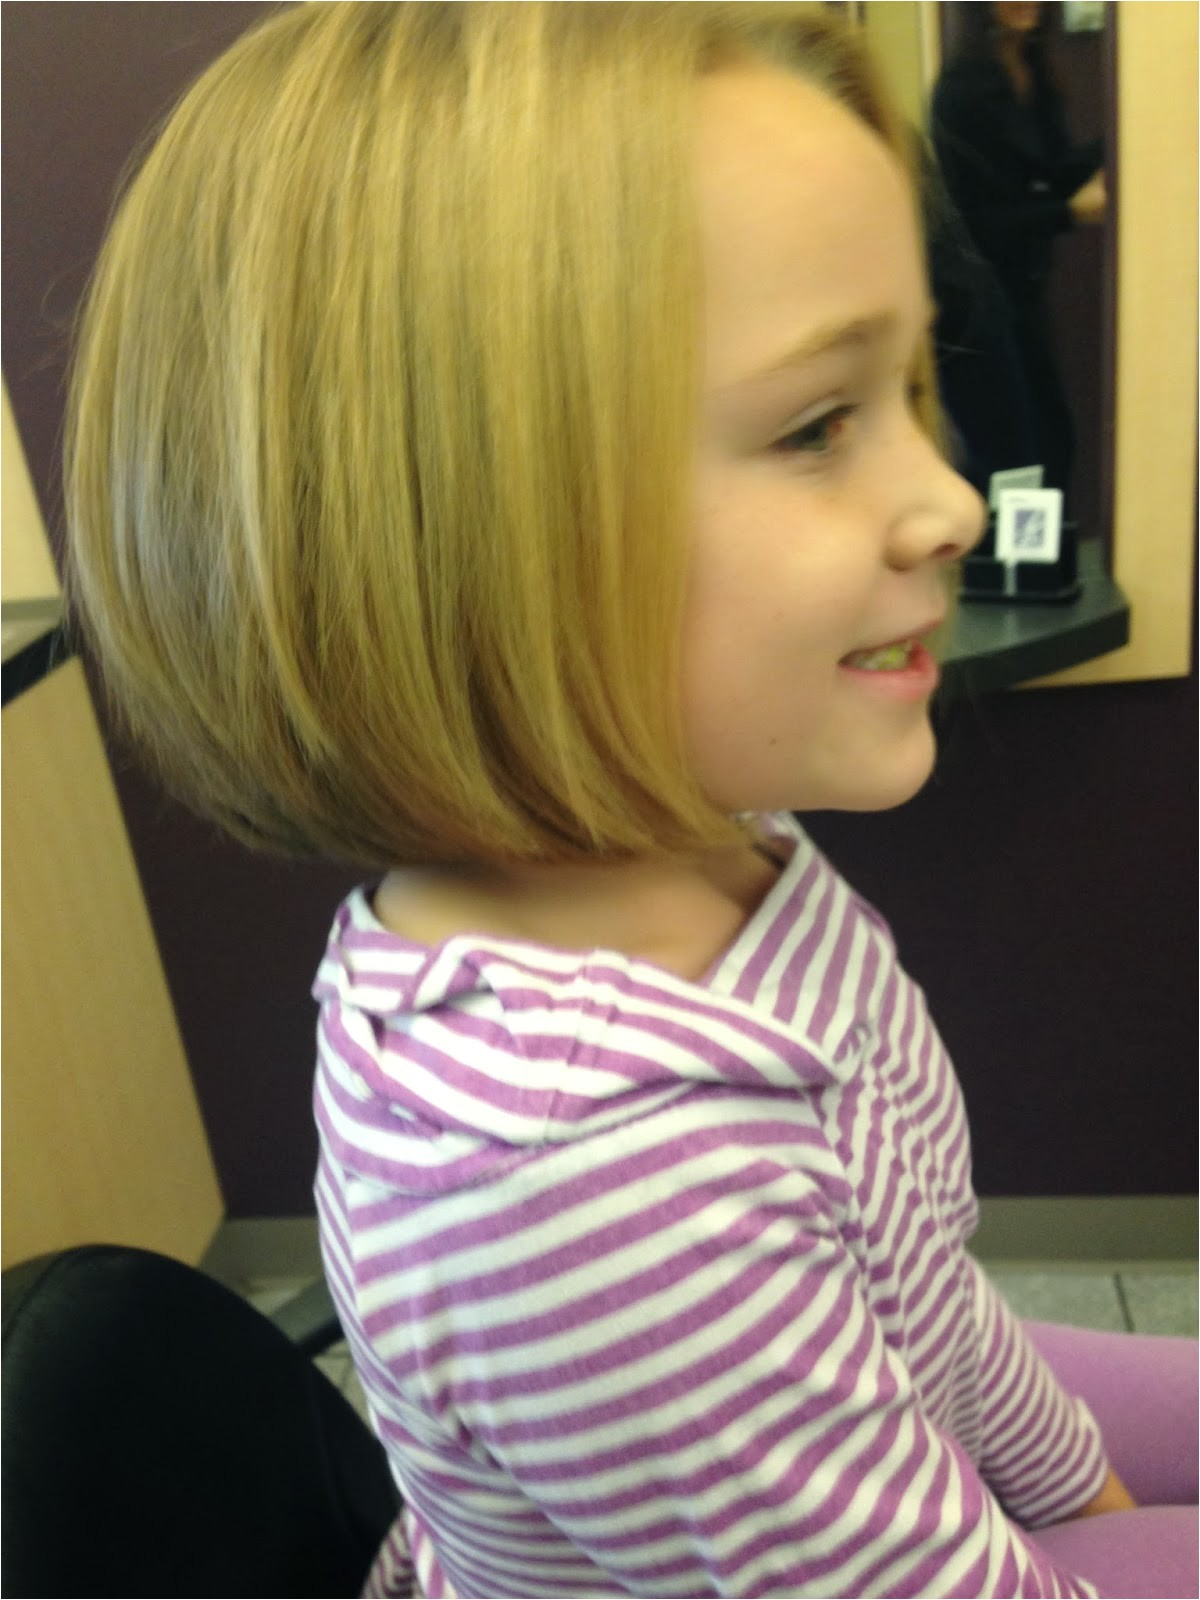 Cute Hairstyles for 9 Year Olds Cute Hairstyles for 9 Year Olds